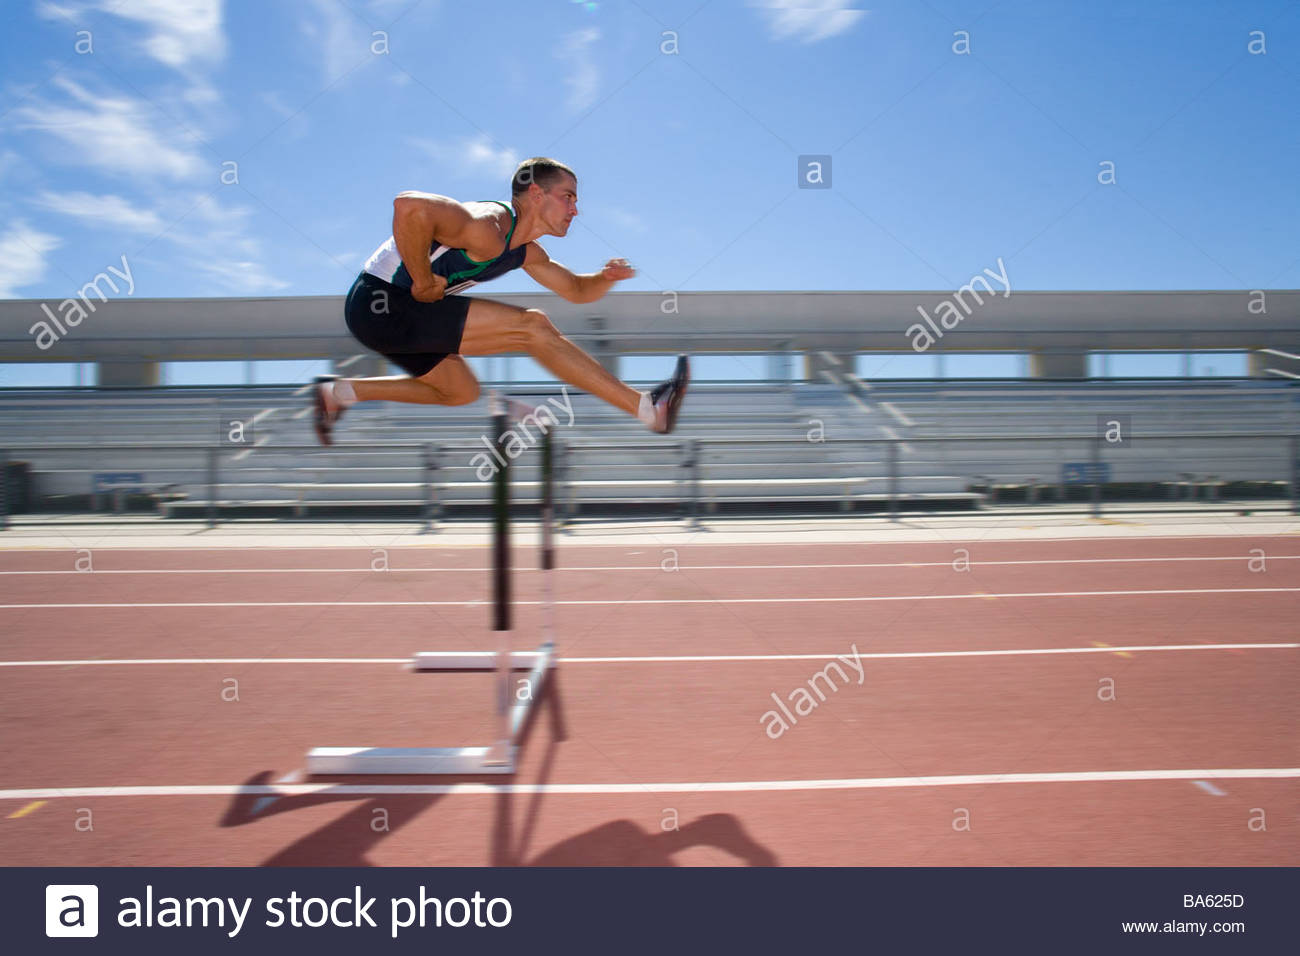 Male Athlete Jumping Over Jump Blurred Motion